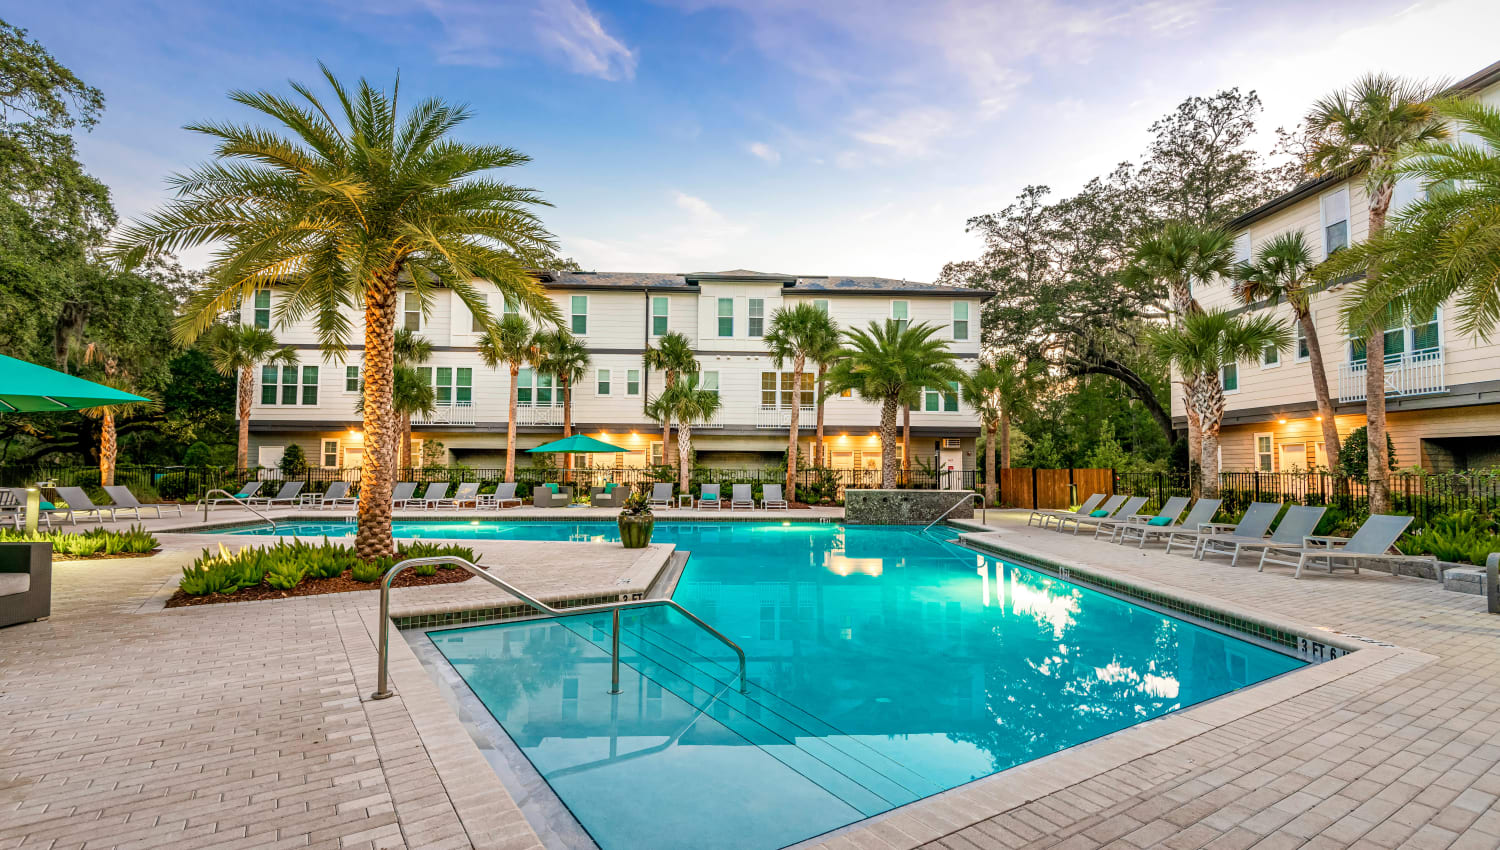 Palm trees around the pool on a gorgeous day at Canopy at Citrus Park in Tampa, Florida